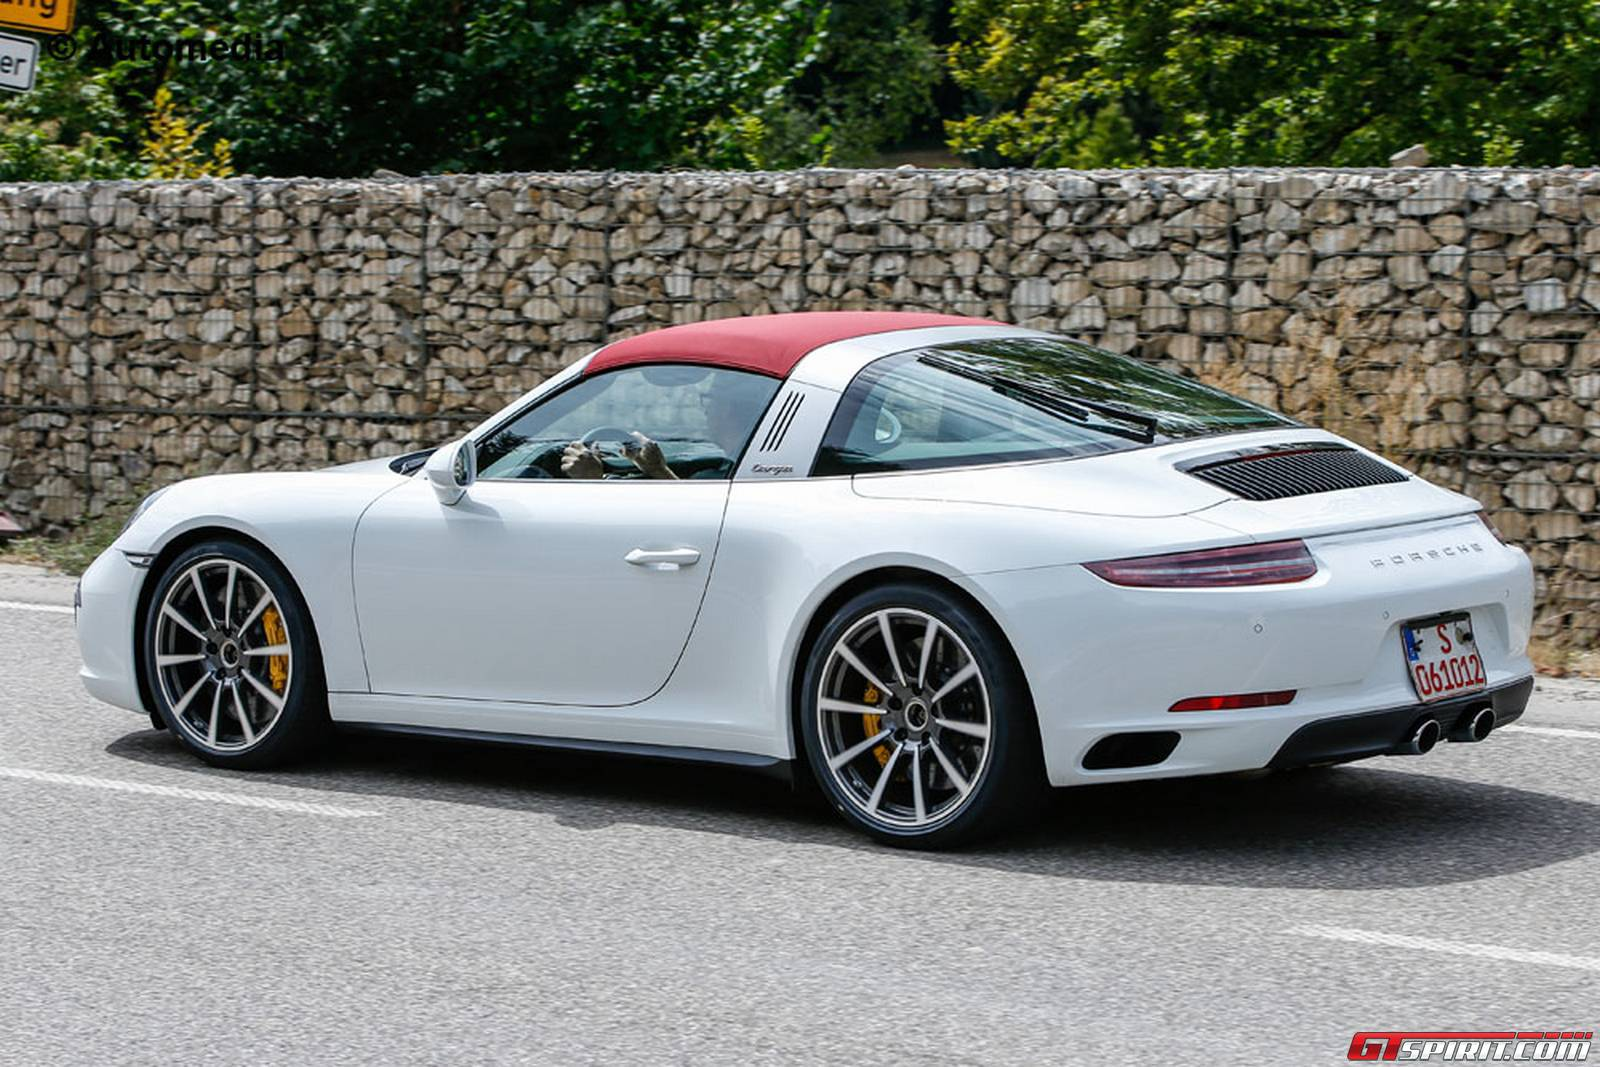 fully undisguised porsche 911 targa facelift spy shots gtspirit. Black Bedroom Furniture Sets. Home Design Ideas